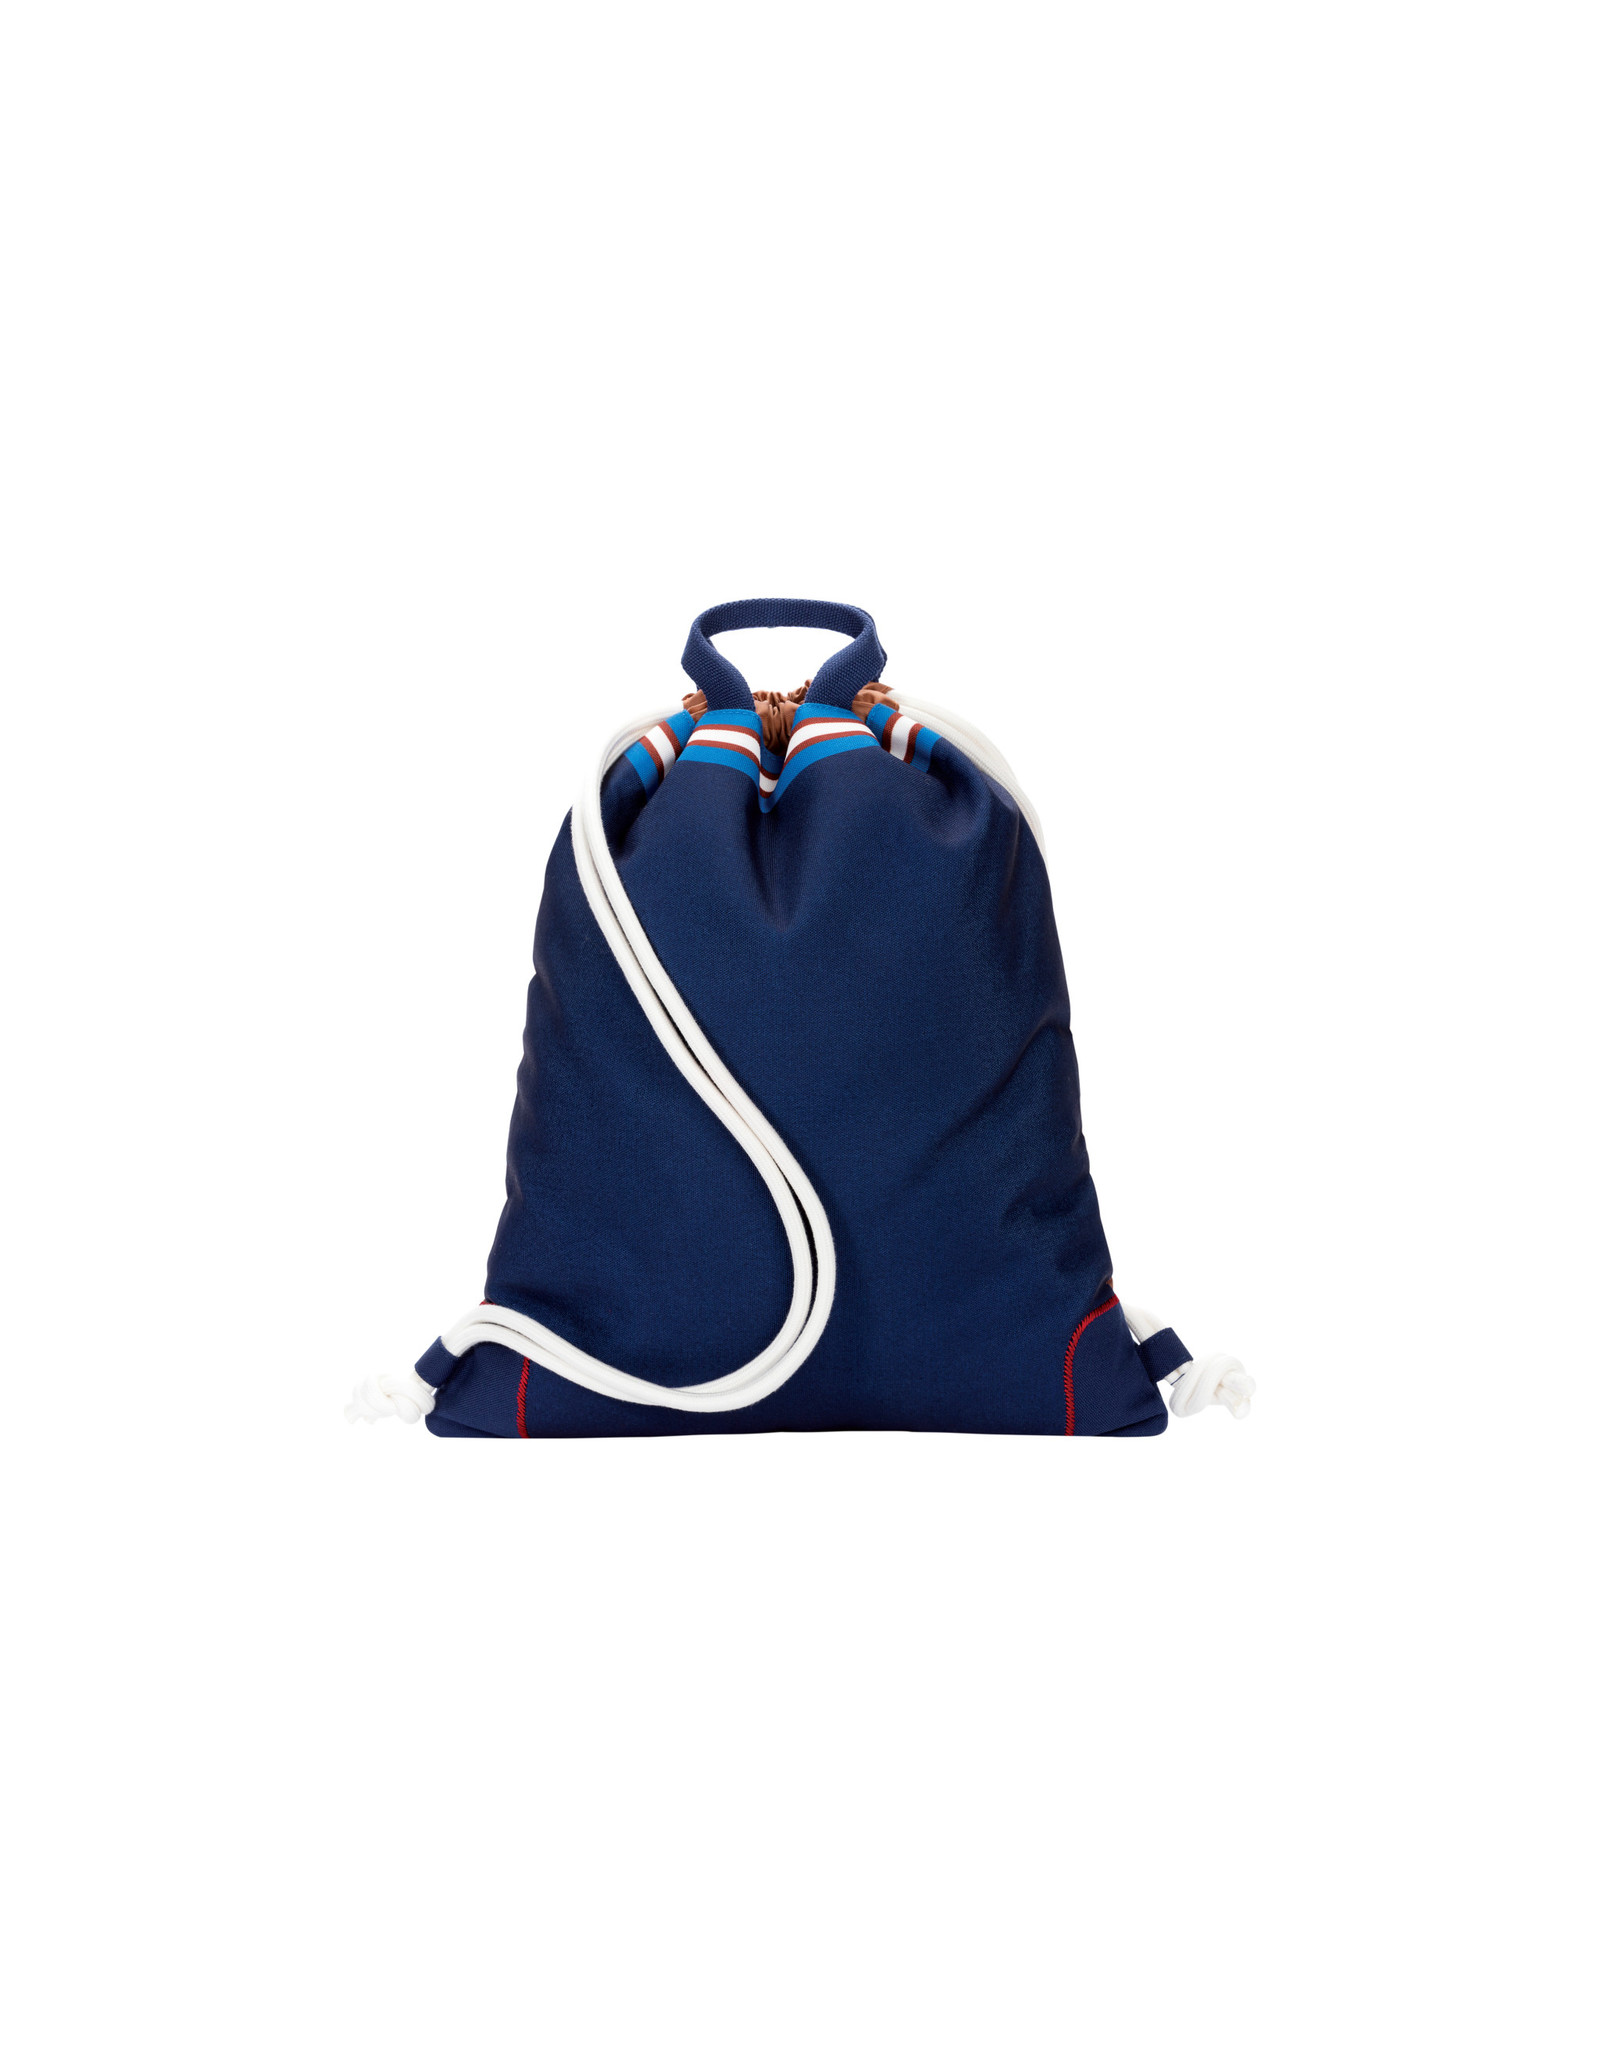 JEUNE PREMIER JEUNE PREMIER CITY BAG SPORTS JOCK